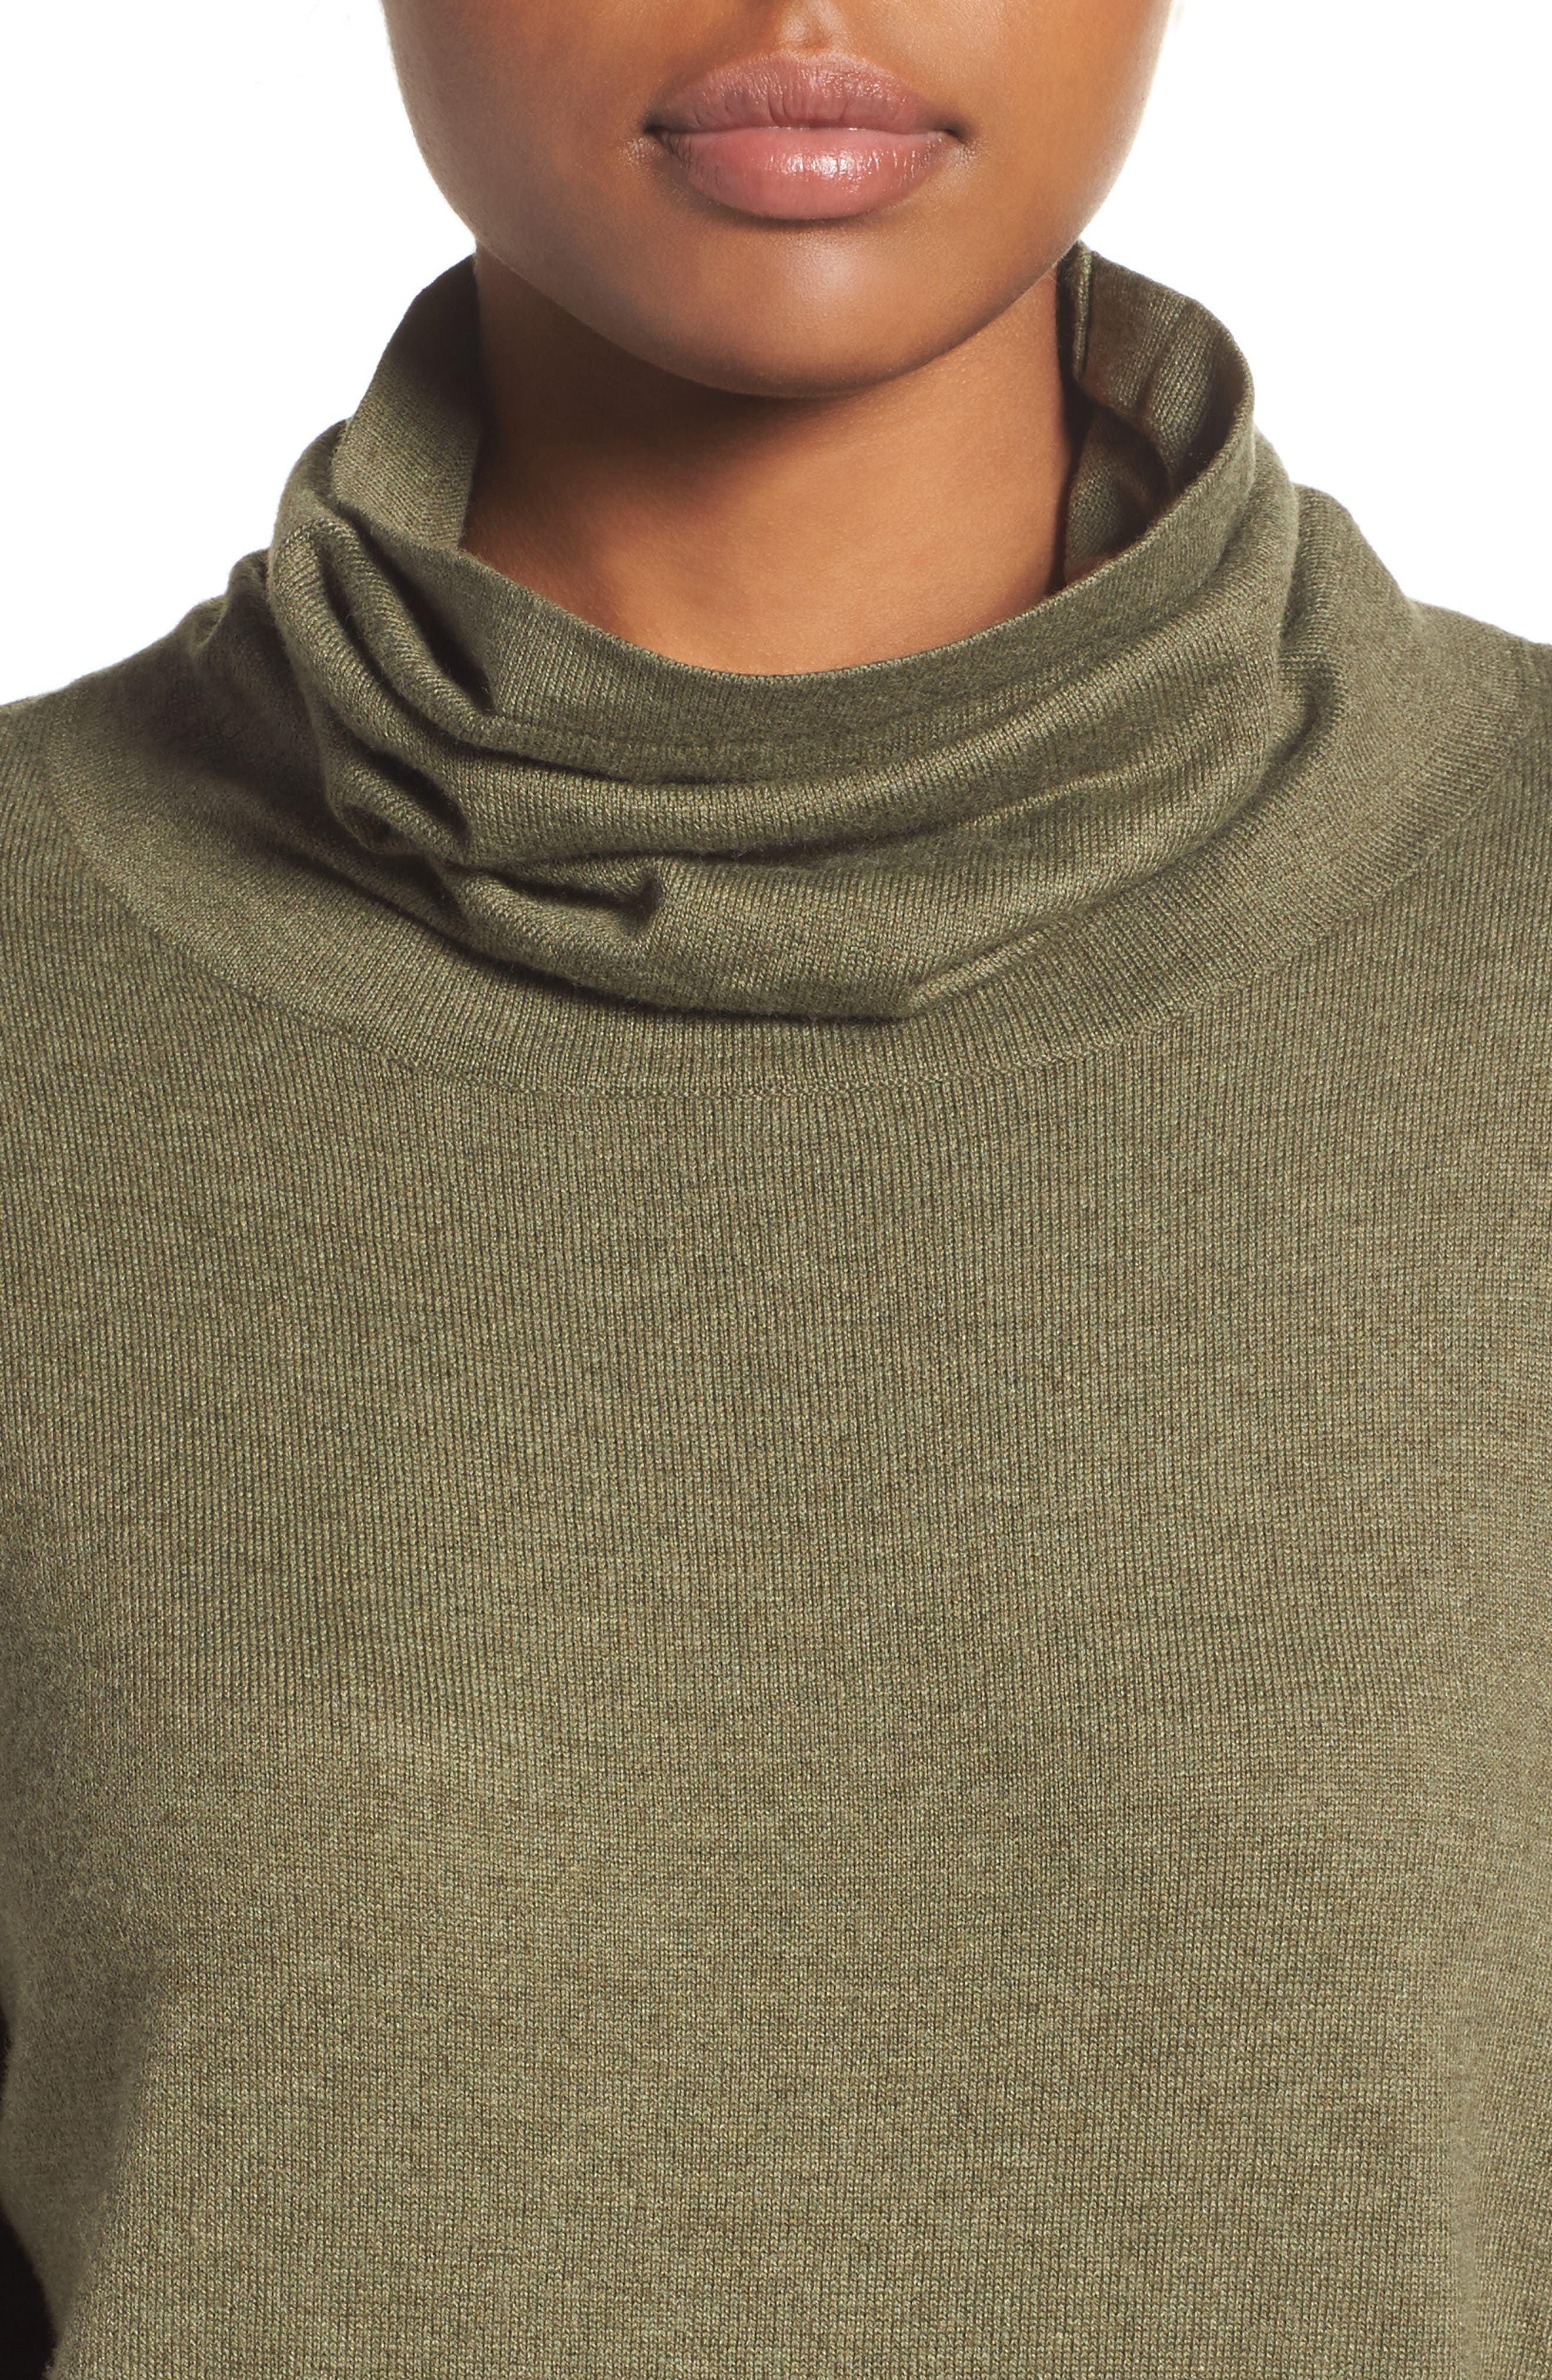 Woodland Tunic Sweater,                             Alternate thumbnail 4, color,                             Burnt Olive Green Heather